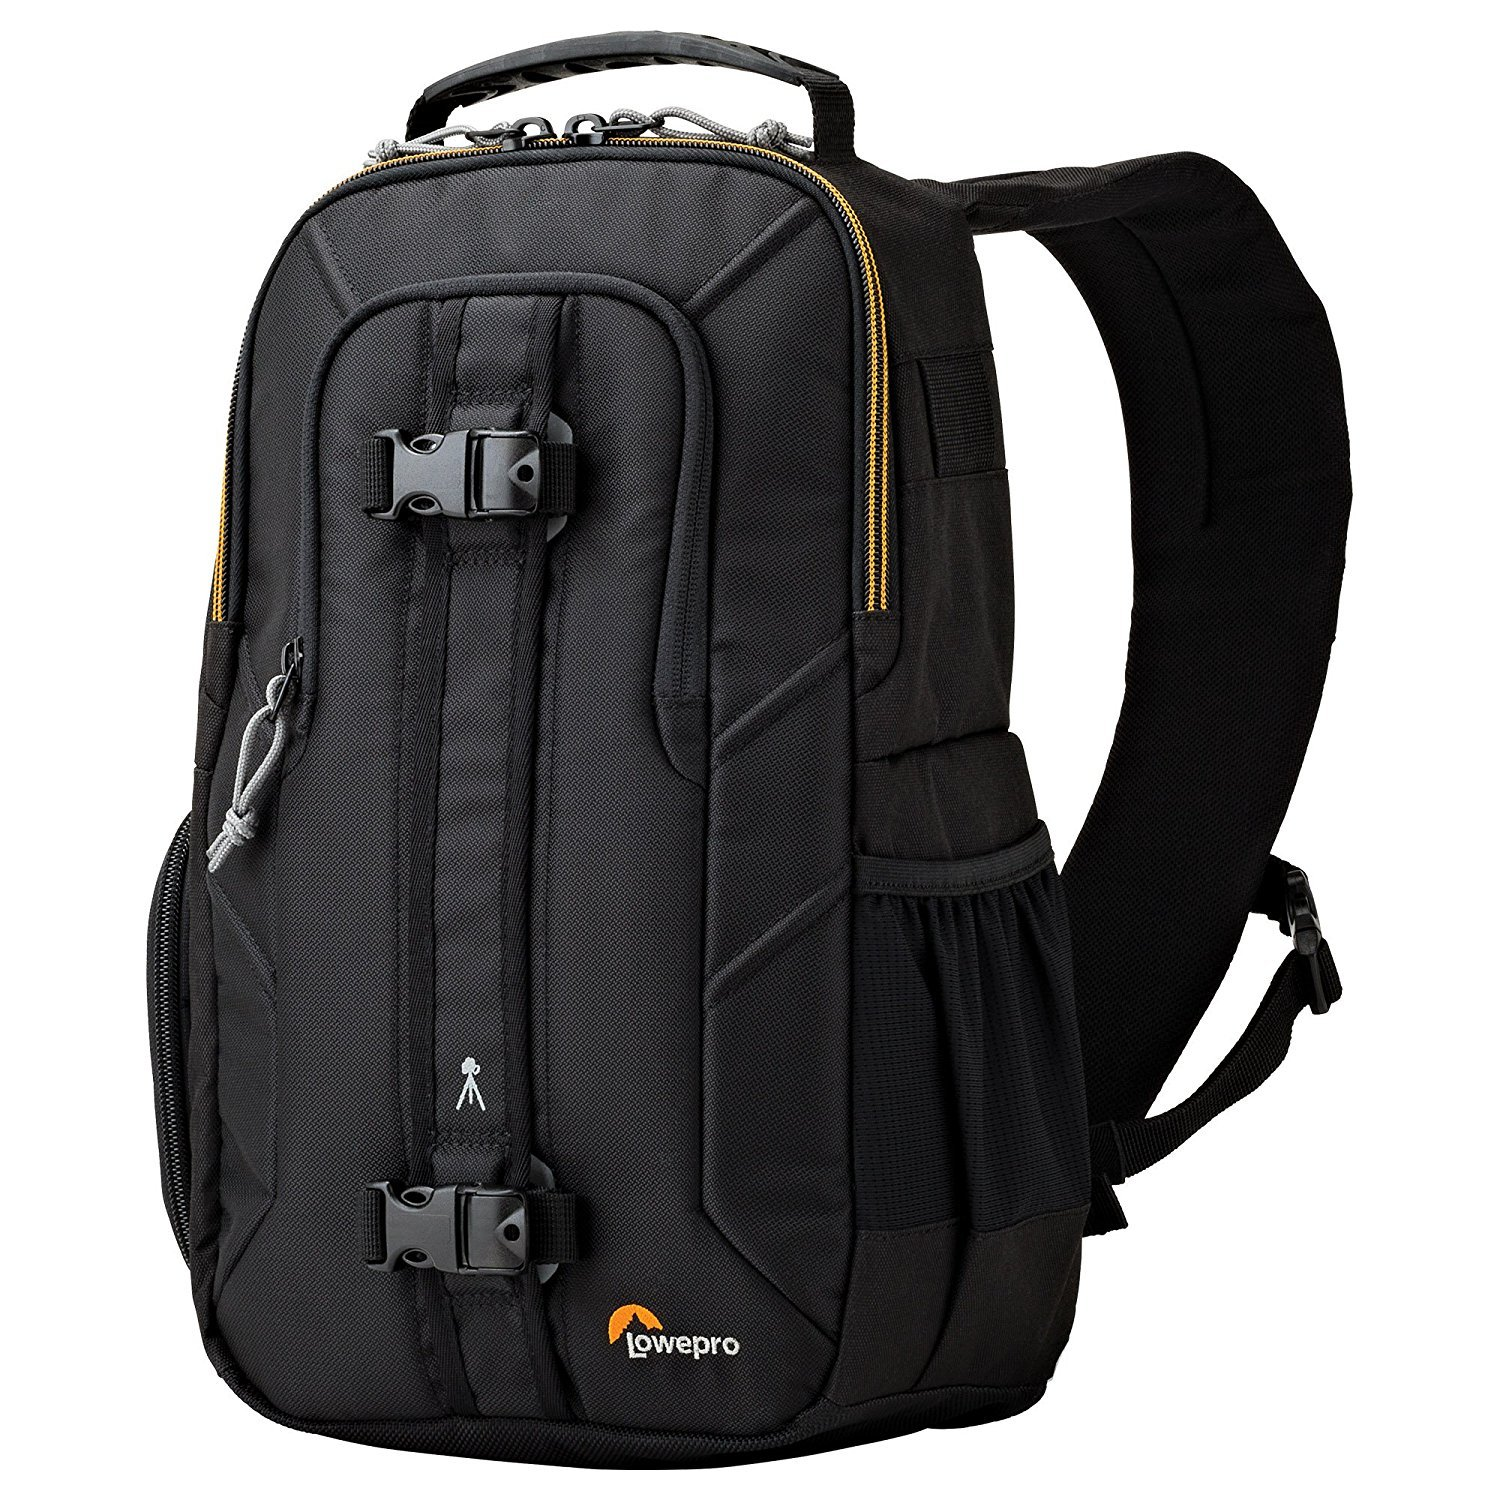 Lowepro Slingshot Edge 150 AW - A Secure, Slim, Smart and Protective Camera Sling for a Mirrorless Kit and Small Tablet